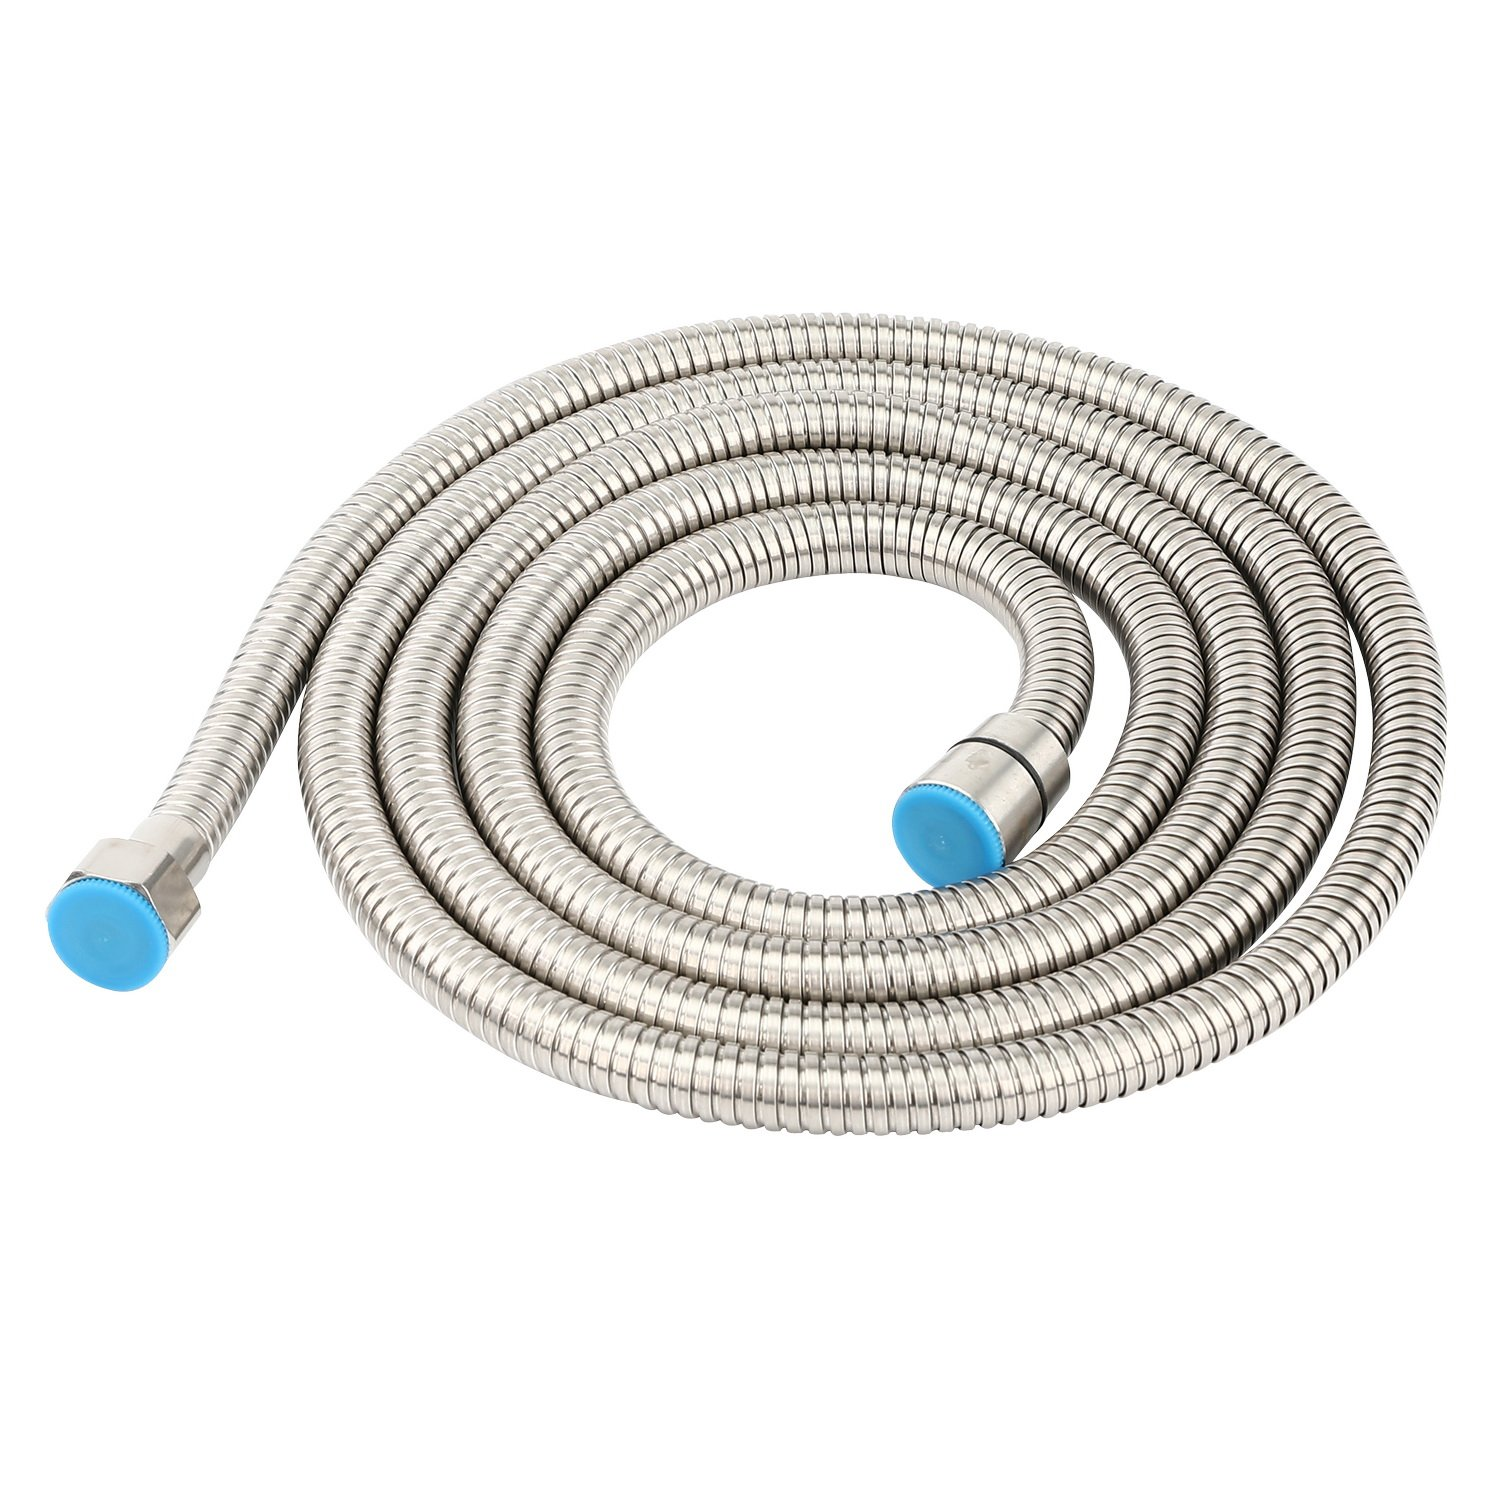 Lansan 304 Stainless Steel Handheld Shower Hose Replacement 98 Inches (2.5 Meters)